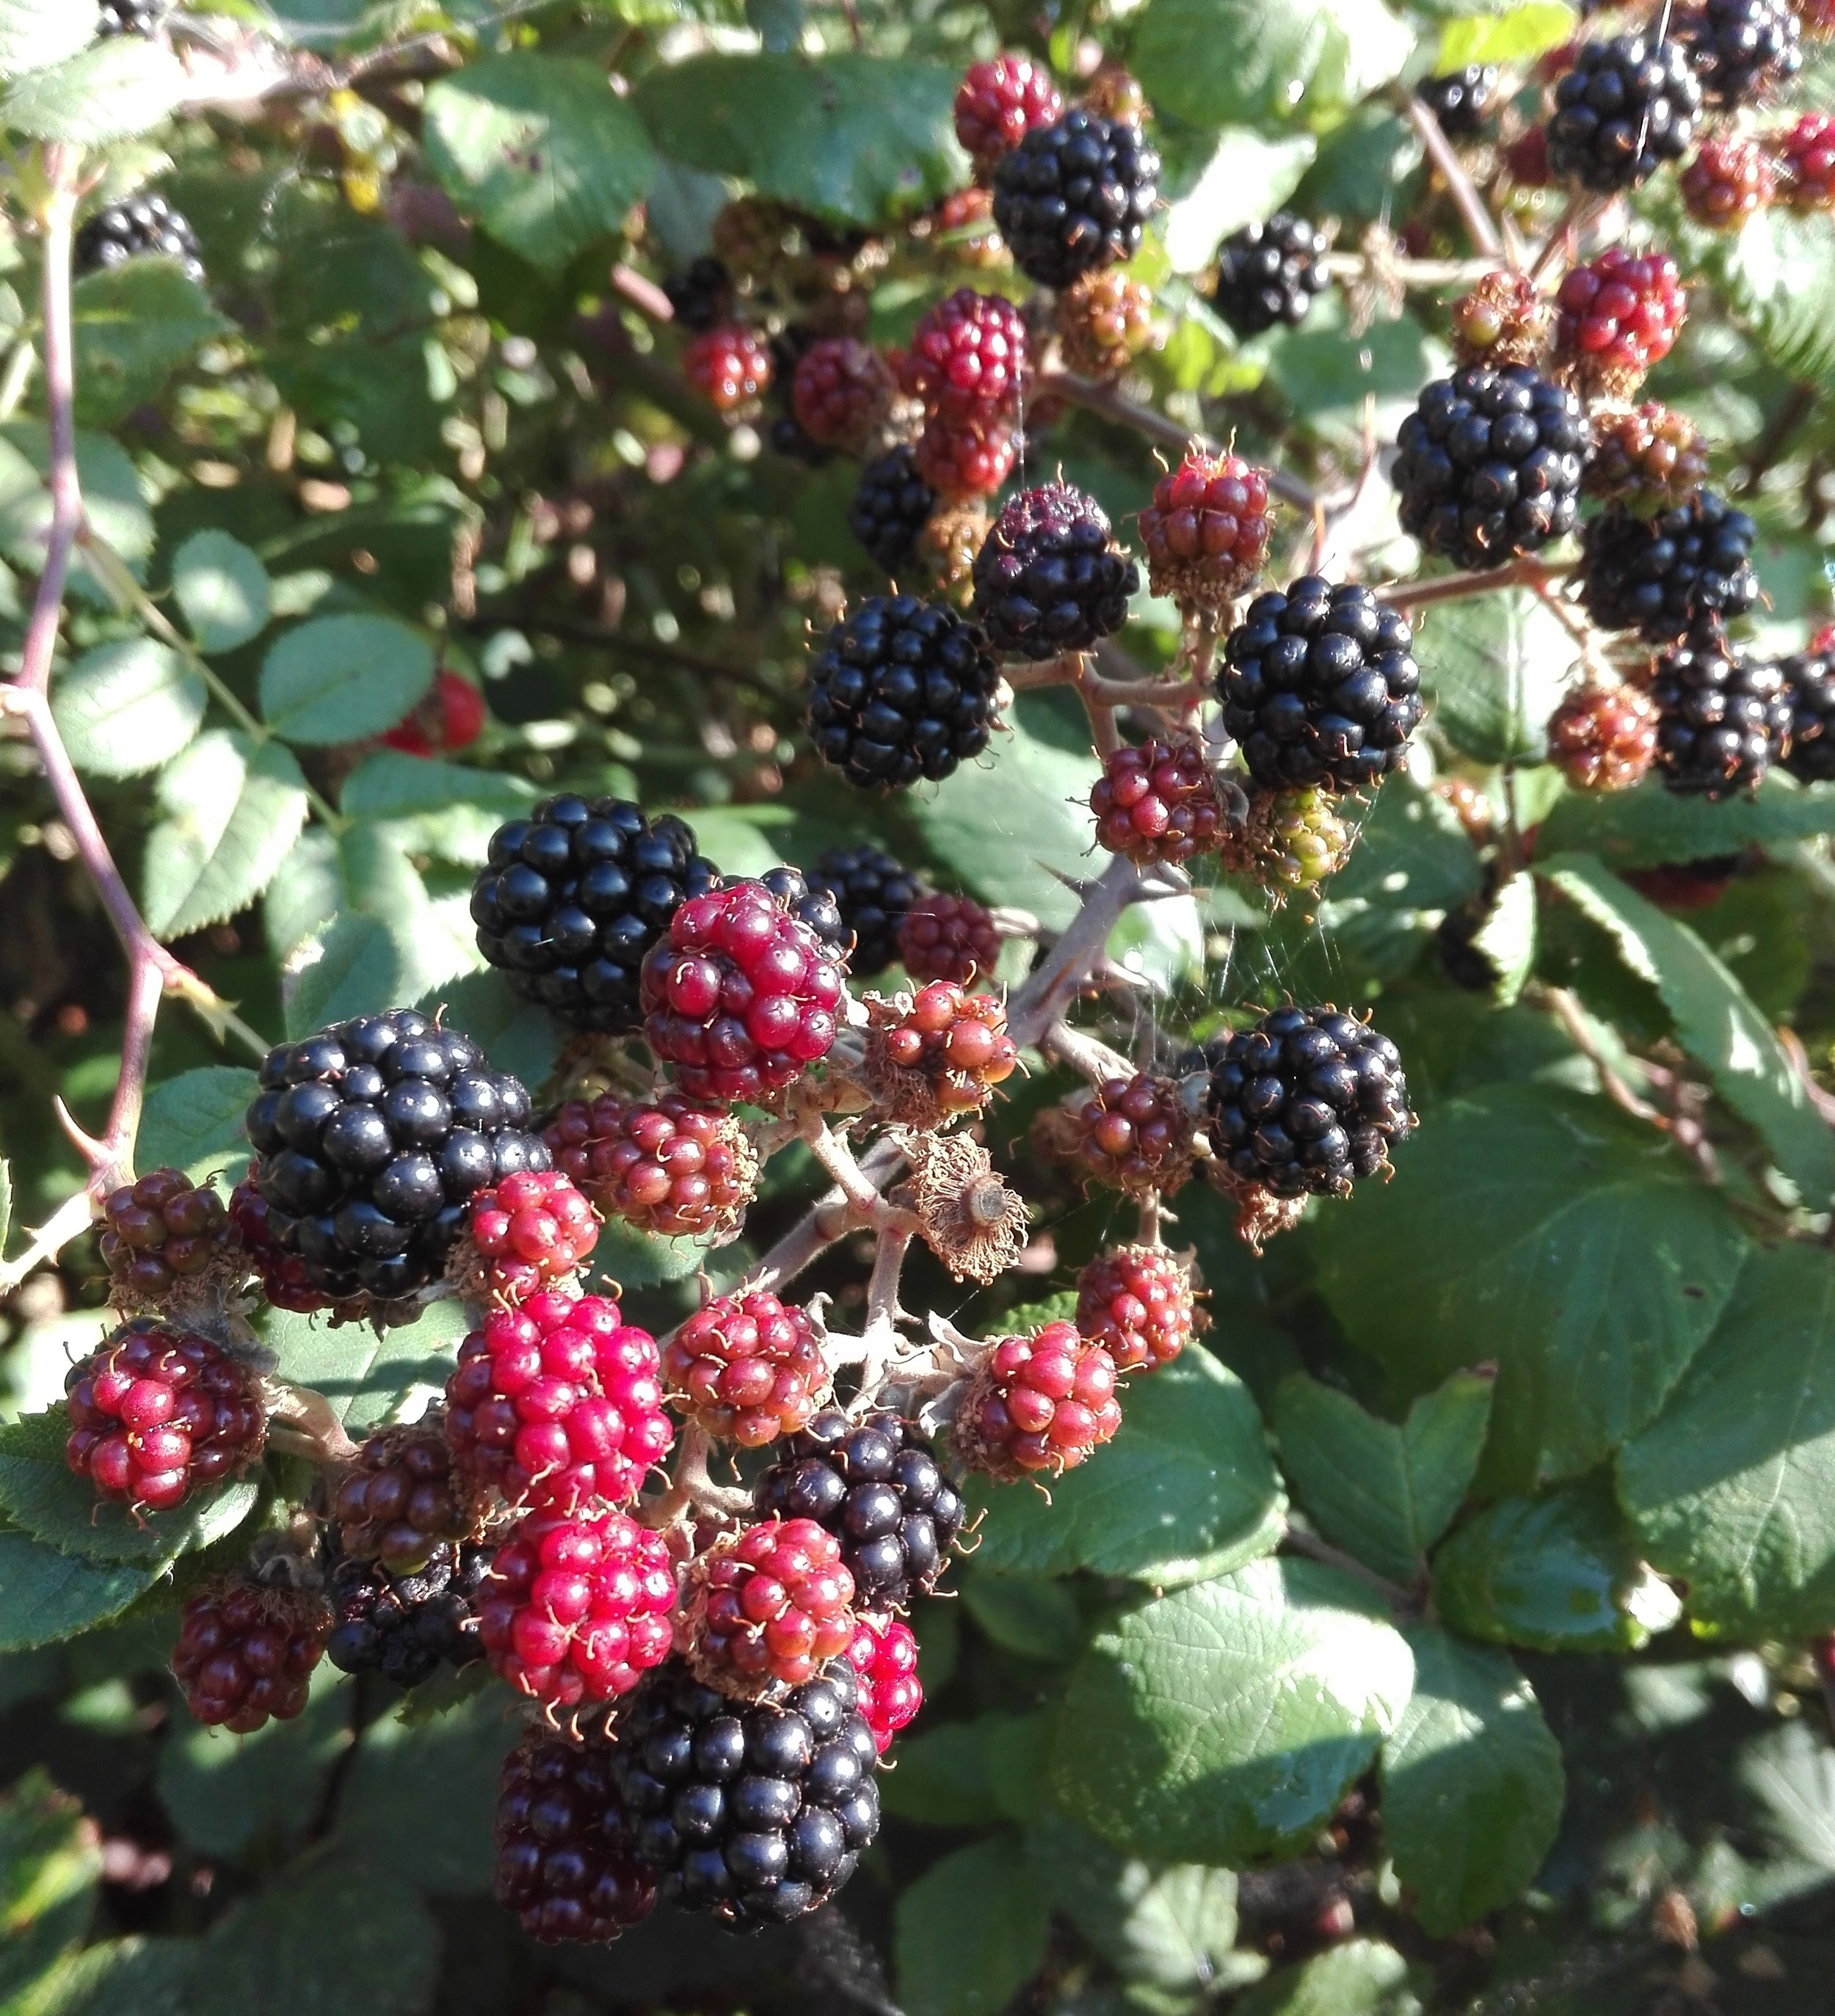 Blackberries / Brambles